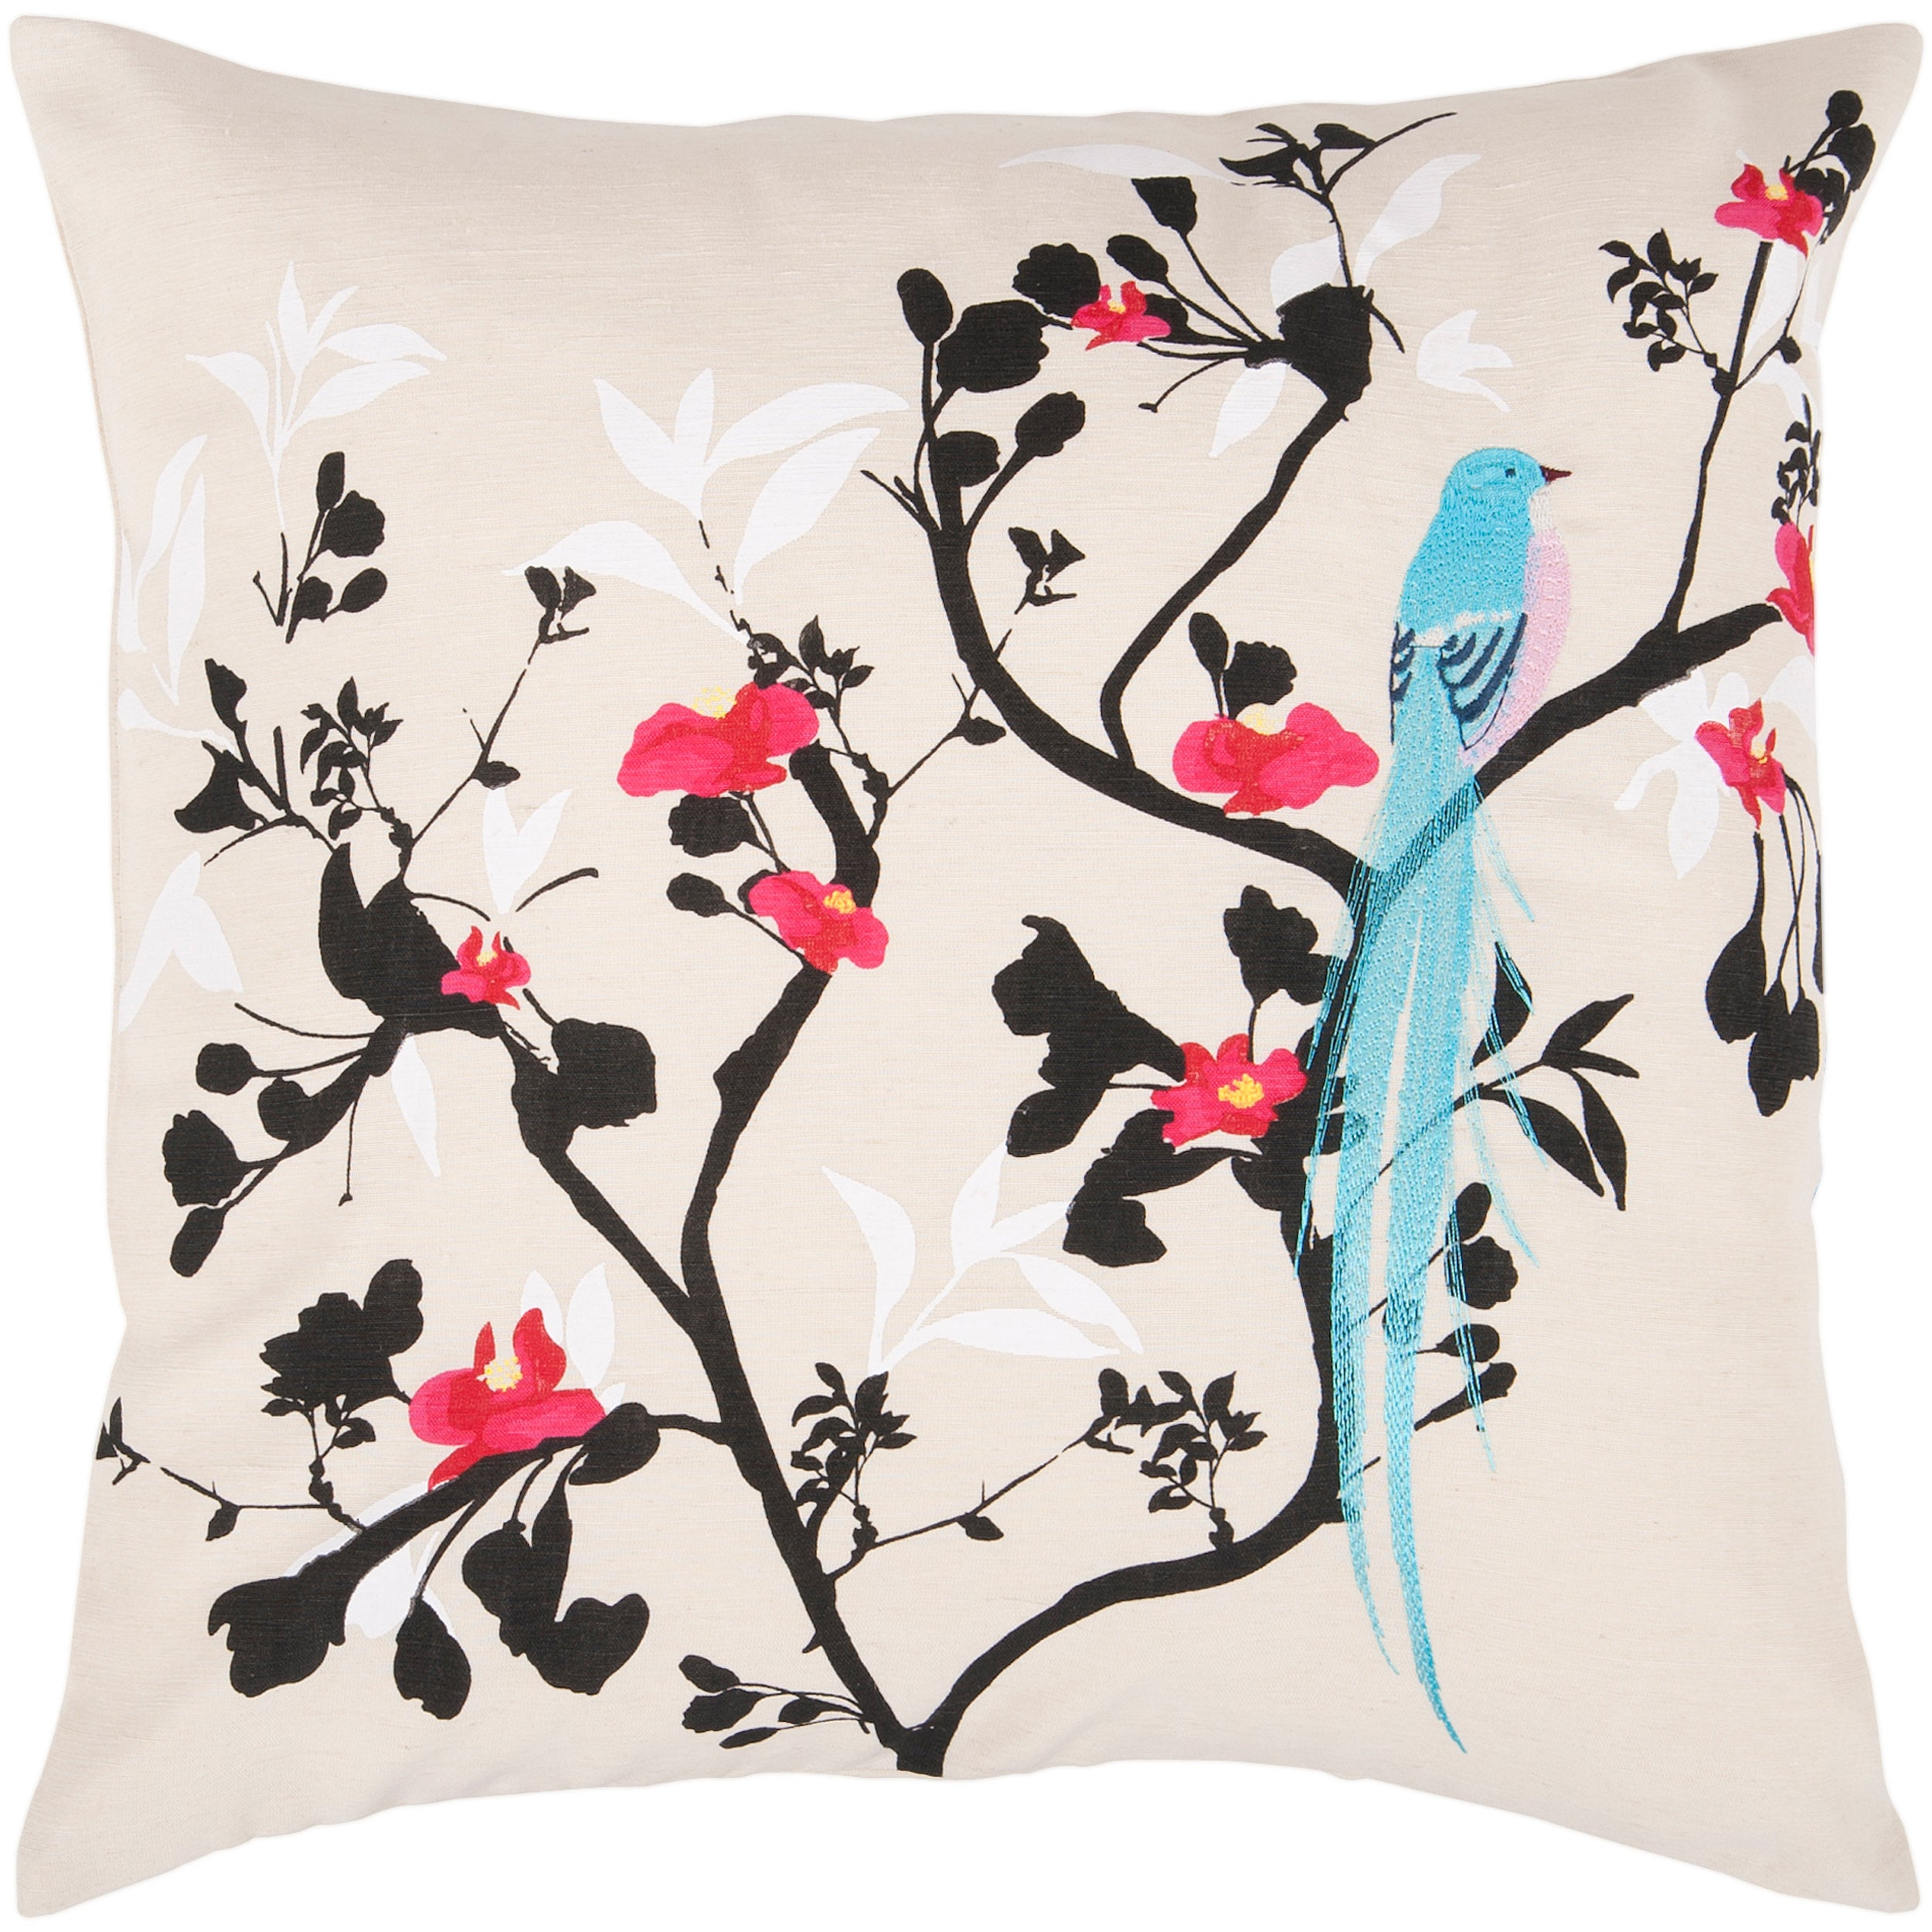 Decorative Luna 18-inch Pillow